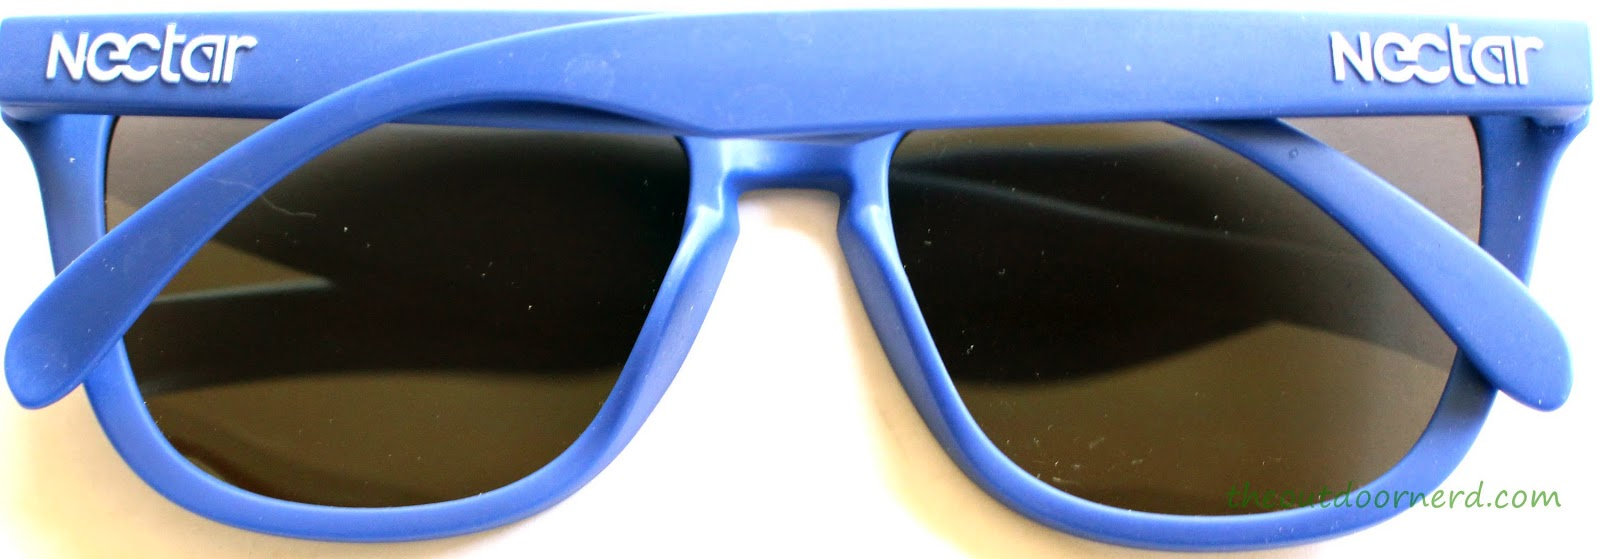 Lightweight Sunglasses for Emergency Apparel Kit